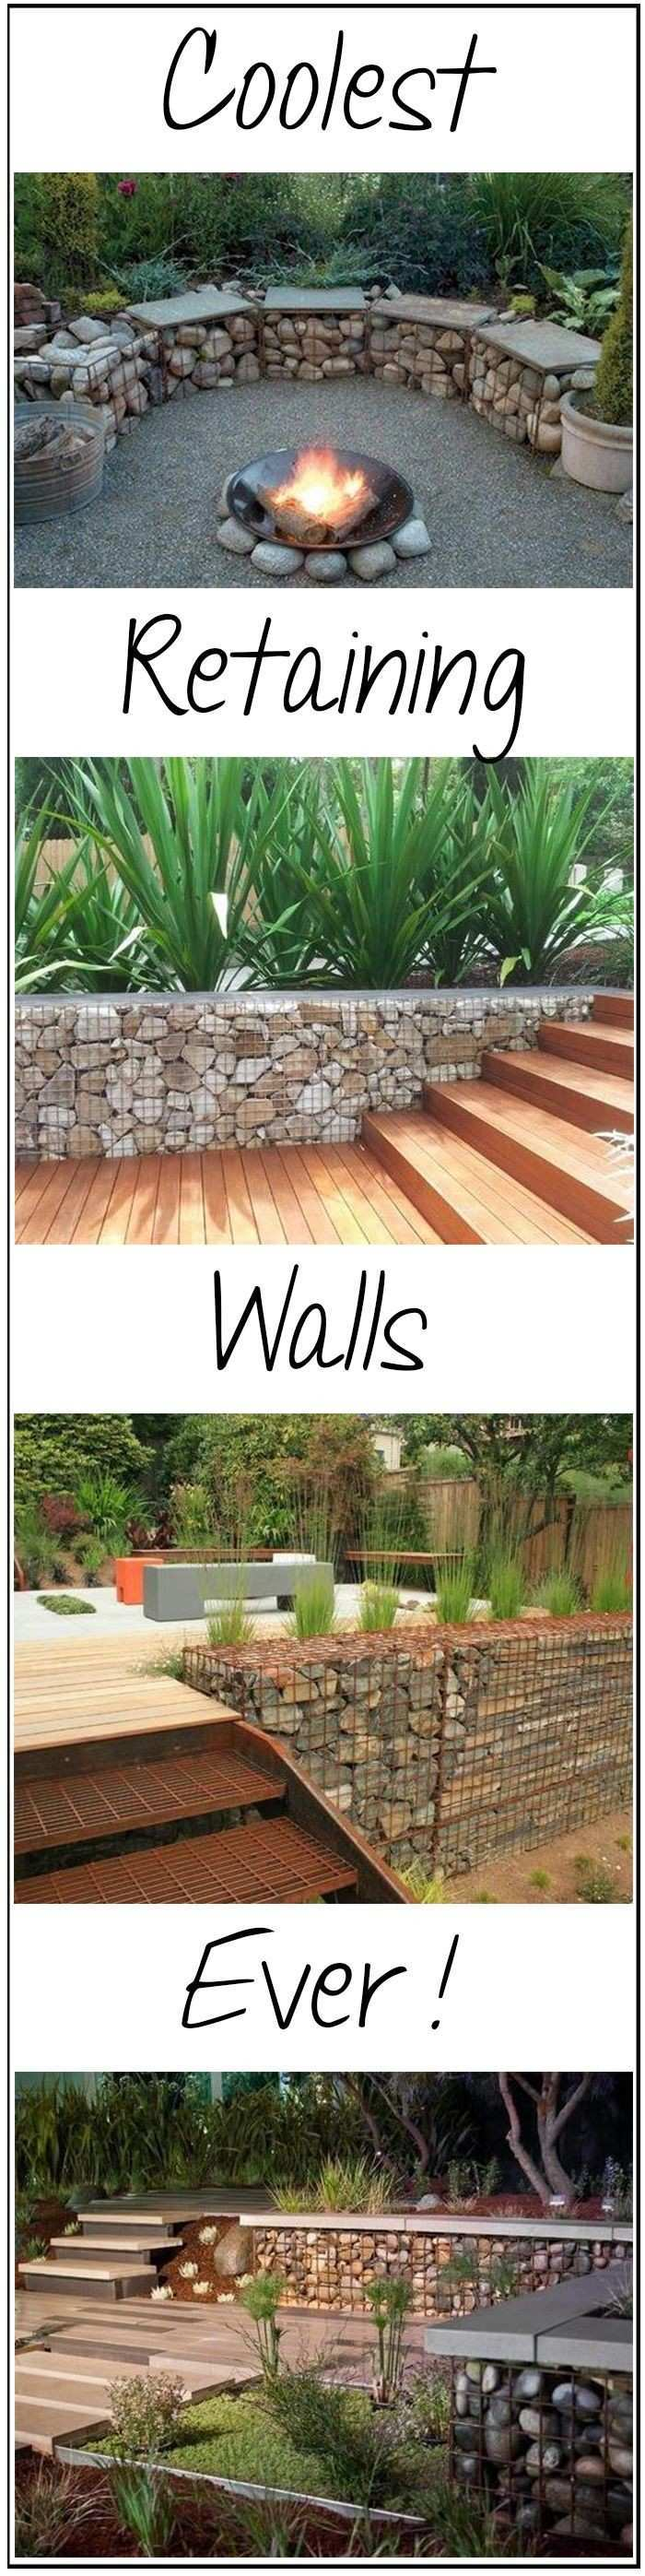 The Coolest Retention or not Walls Ever Pinterest